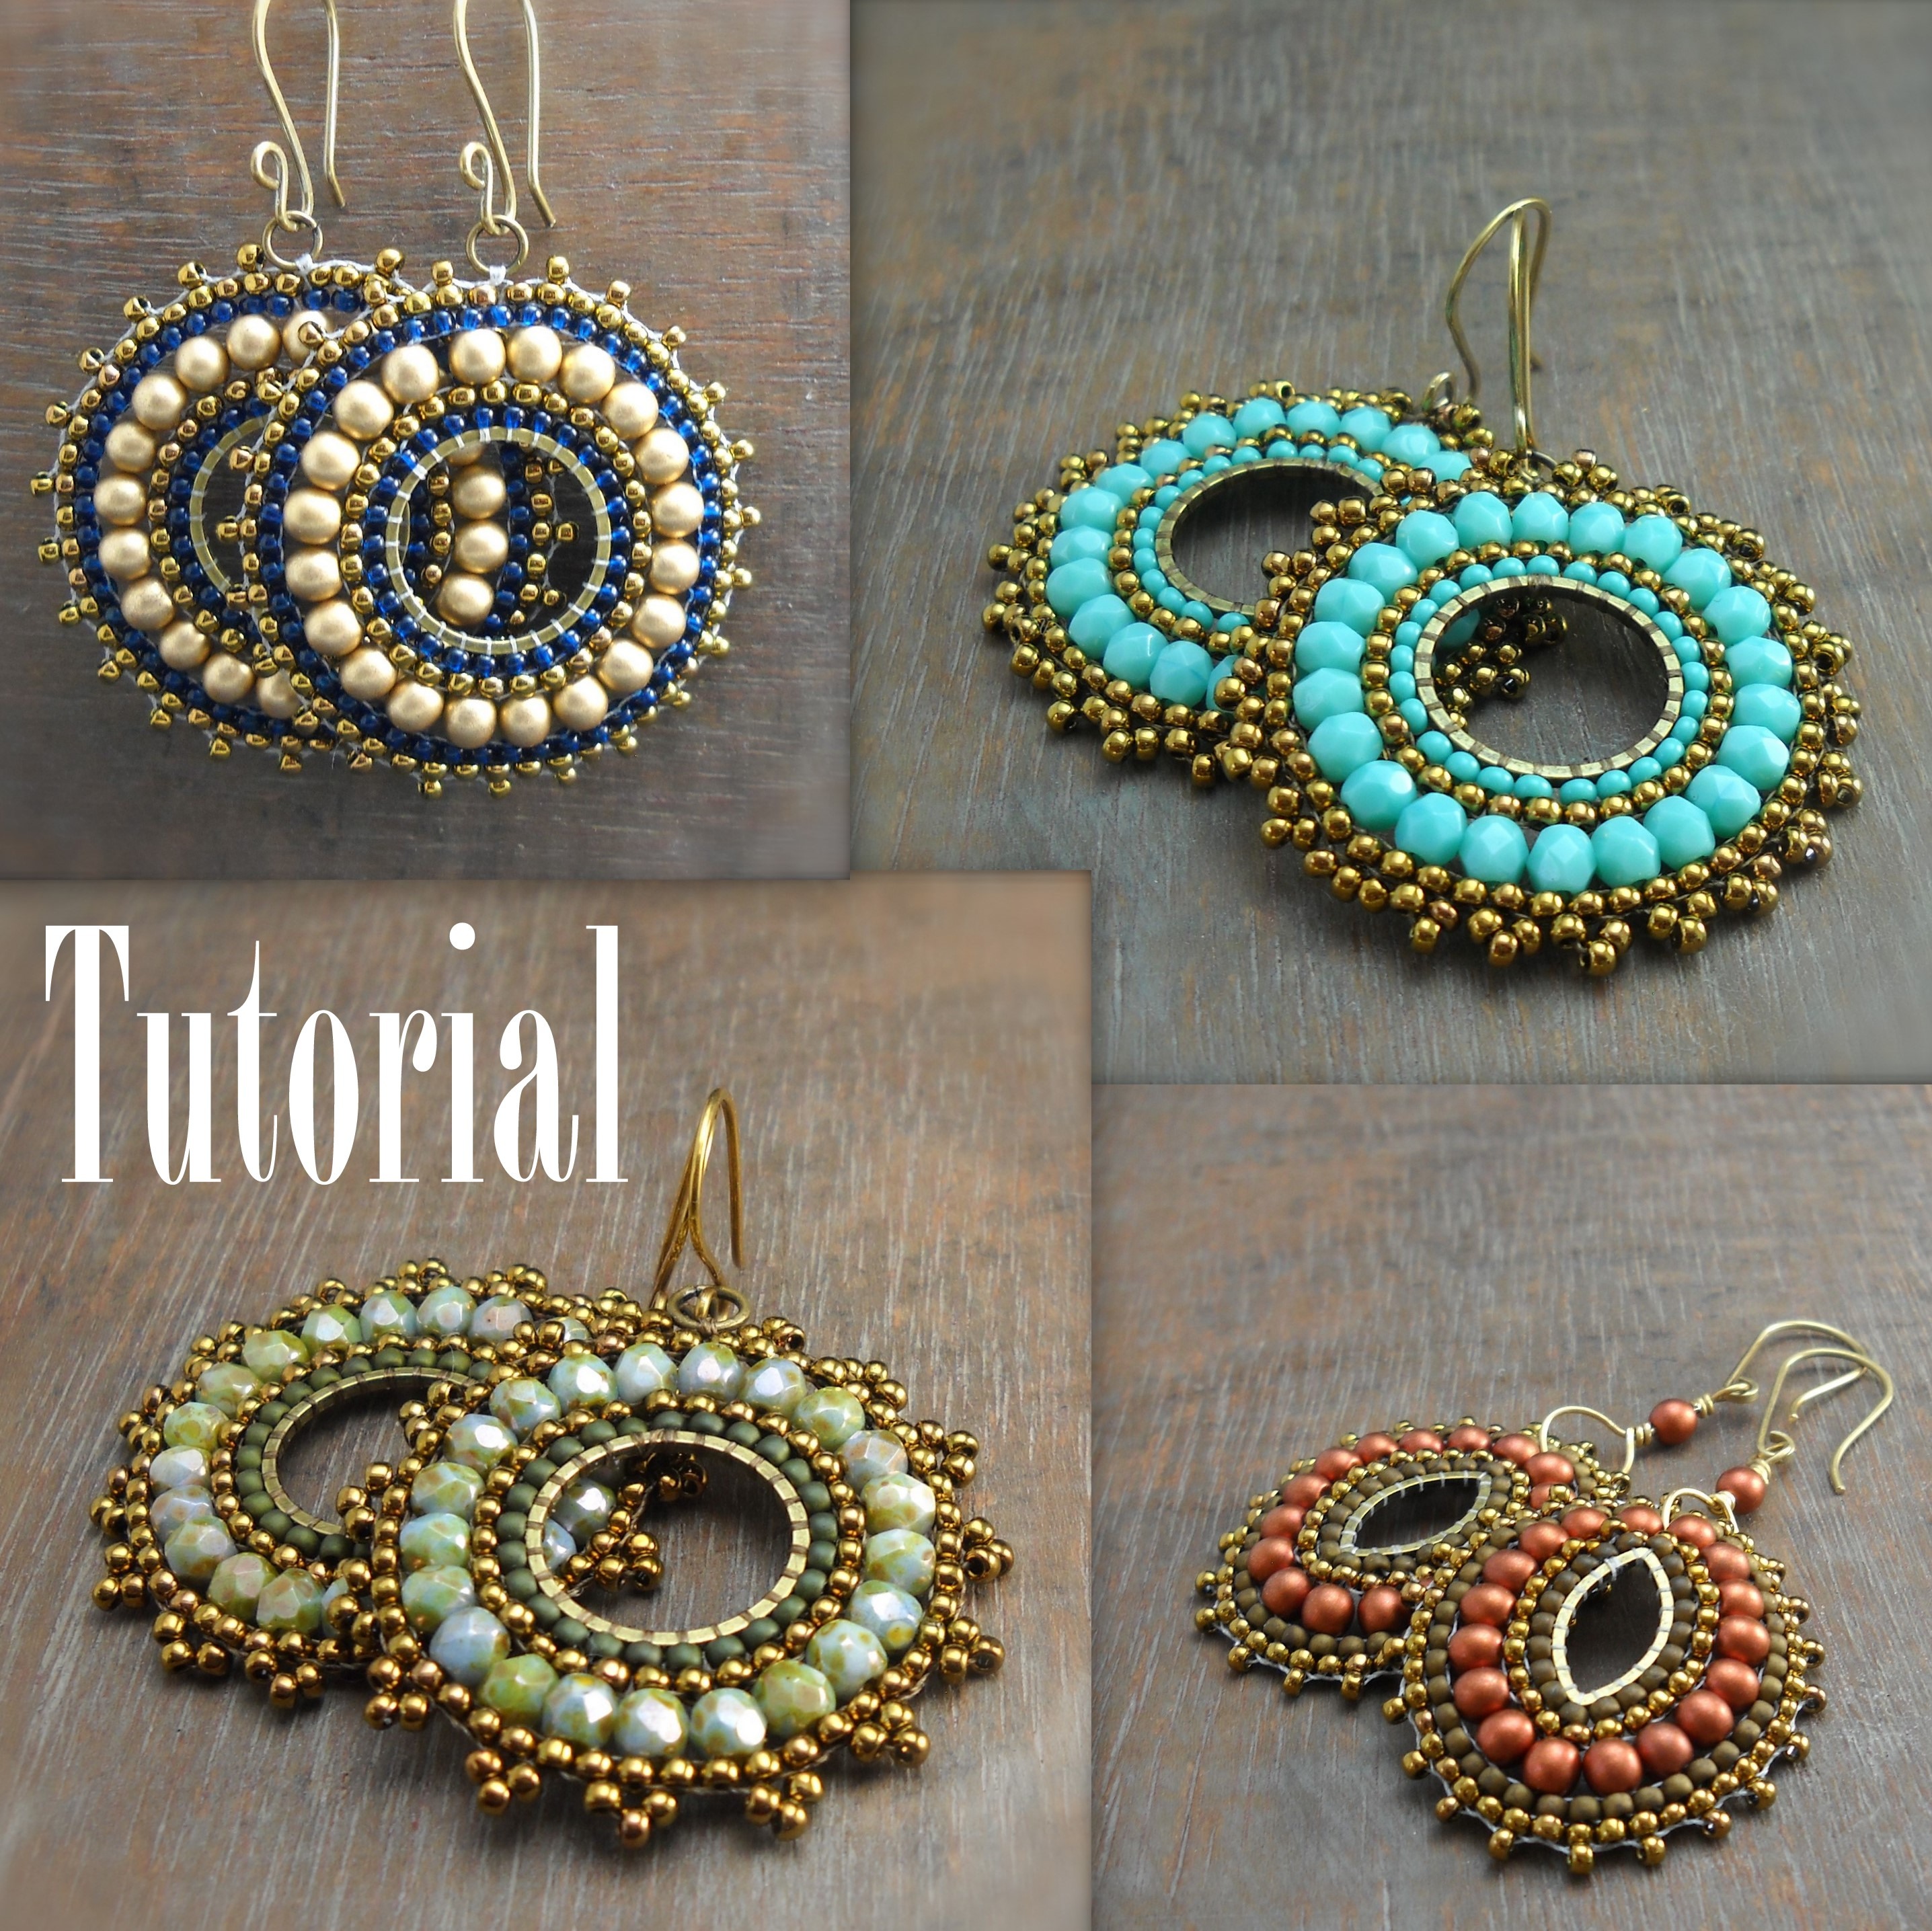 Bead Woven Medallion Earrings | Eat. Breathe. Design.